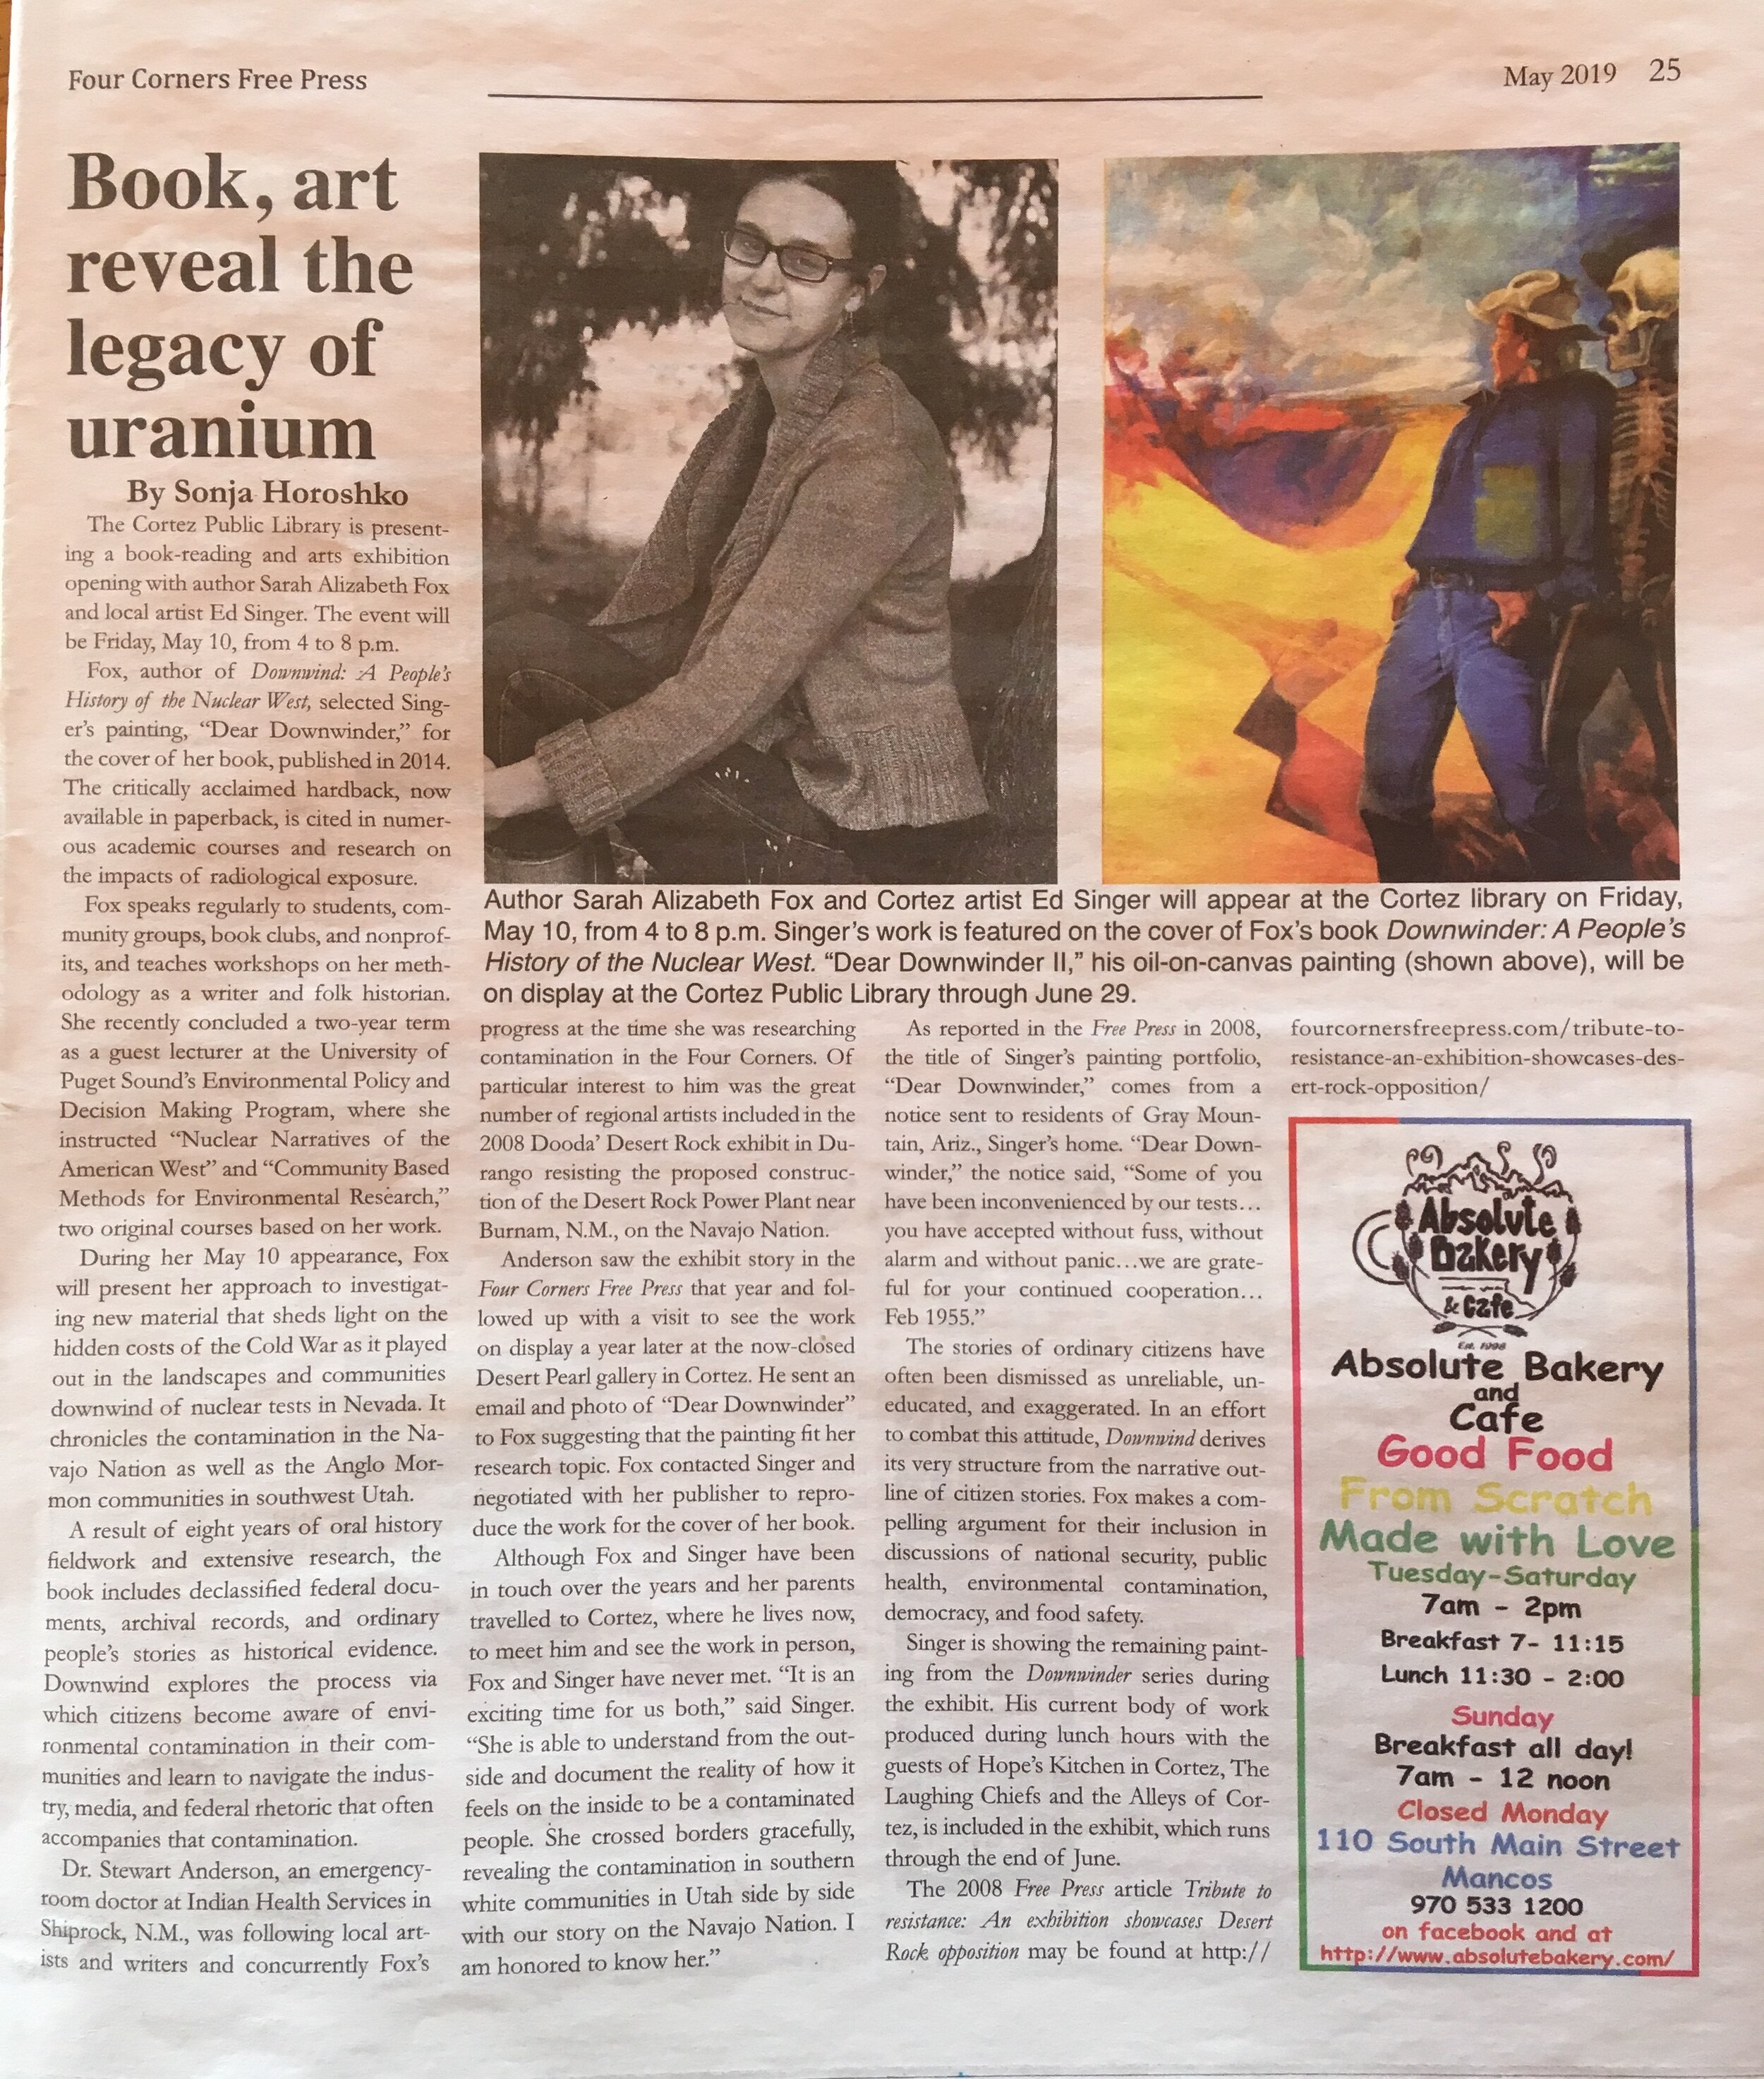 Article by 4 Corners journalist and artist Sonja Horoshko, published in the Four Corners Free Press, on a joint art opening of works by renowned artist Ed Singer and a book event featuring  Downwind , held in Cortez Colorado in May 2019.  Learn more about Ed's incredible work here . Sonja has published numerous pieces about the legacies of uranium in the Four Corners region; read more of her work  here .